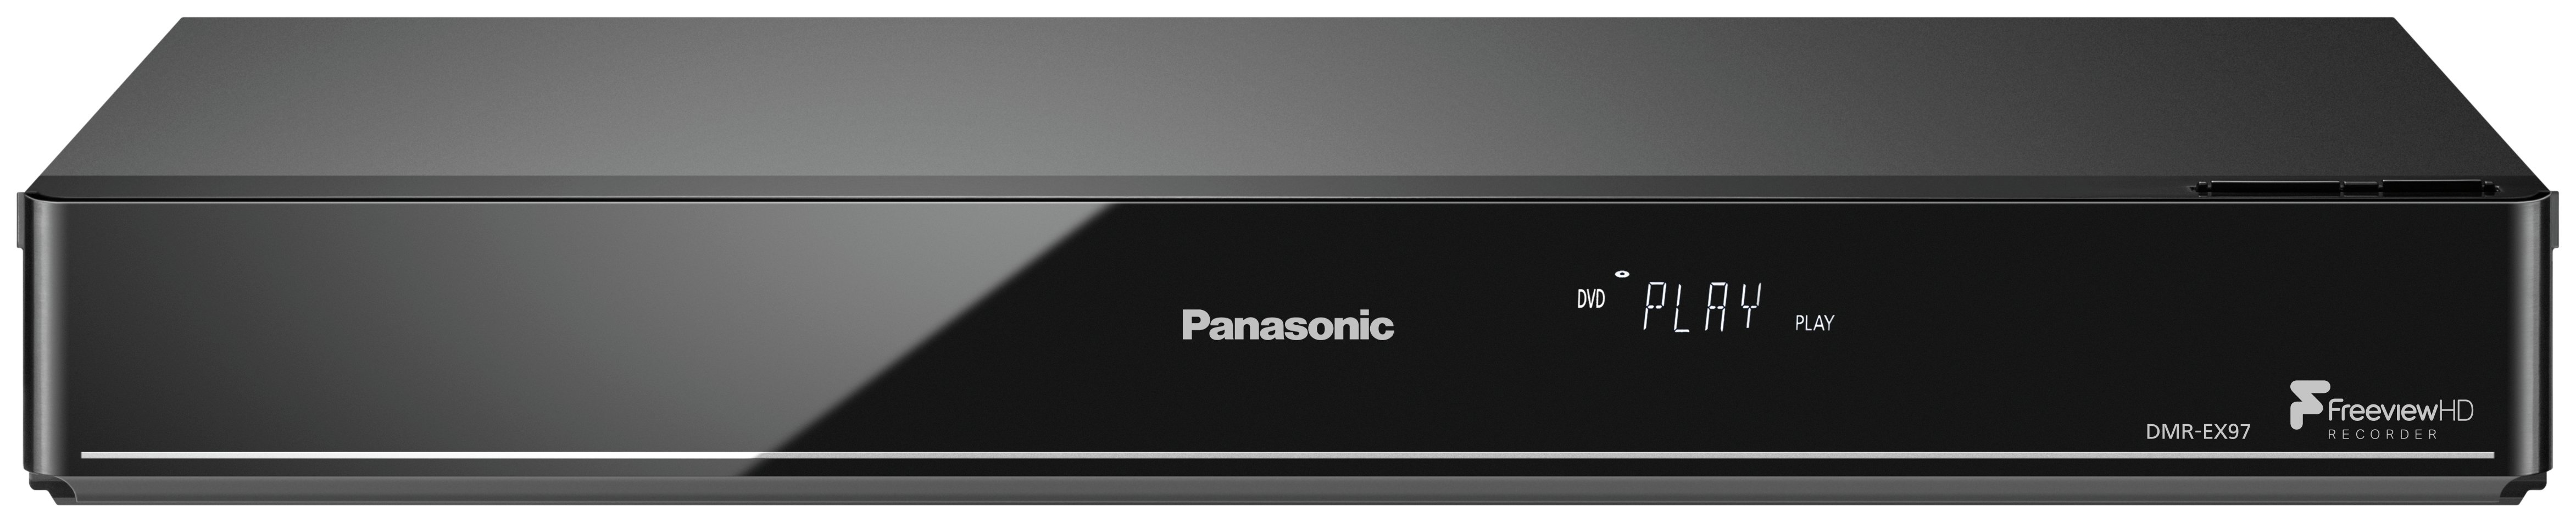 panasonic-pvr-dvd-recorder-500gb-dmr